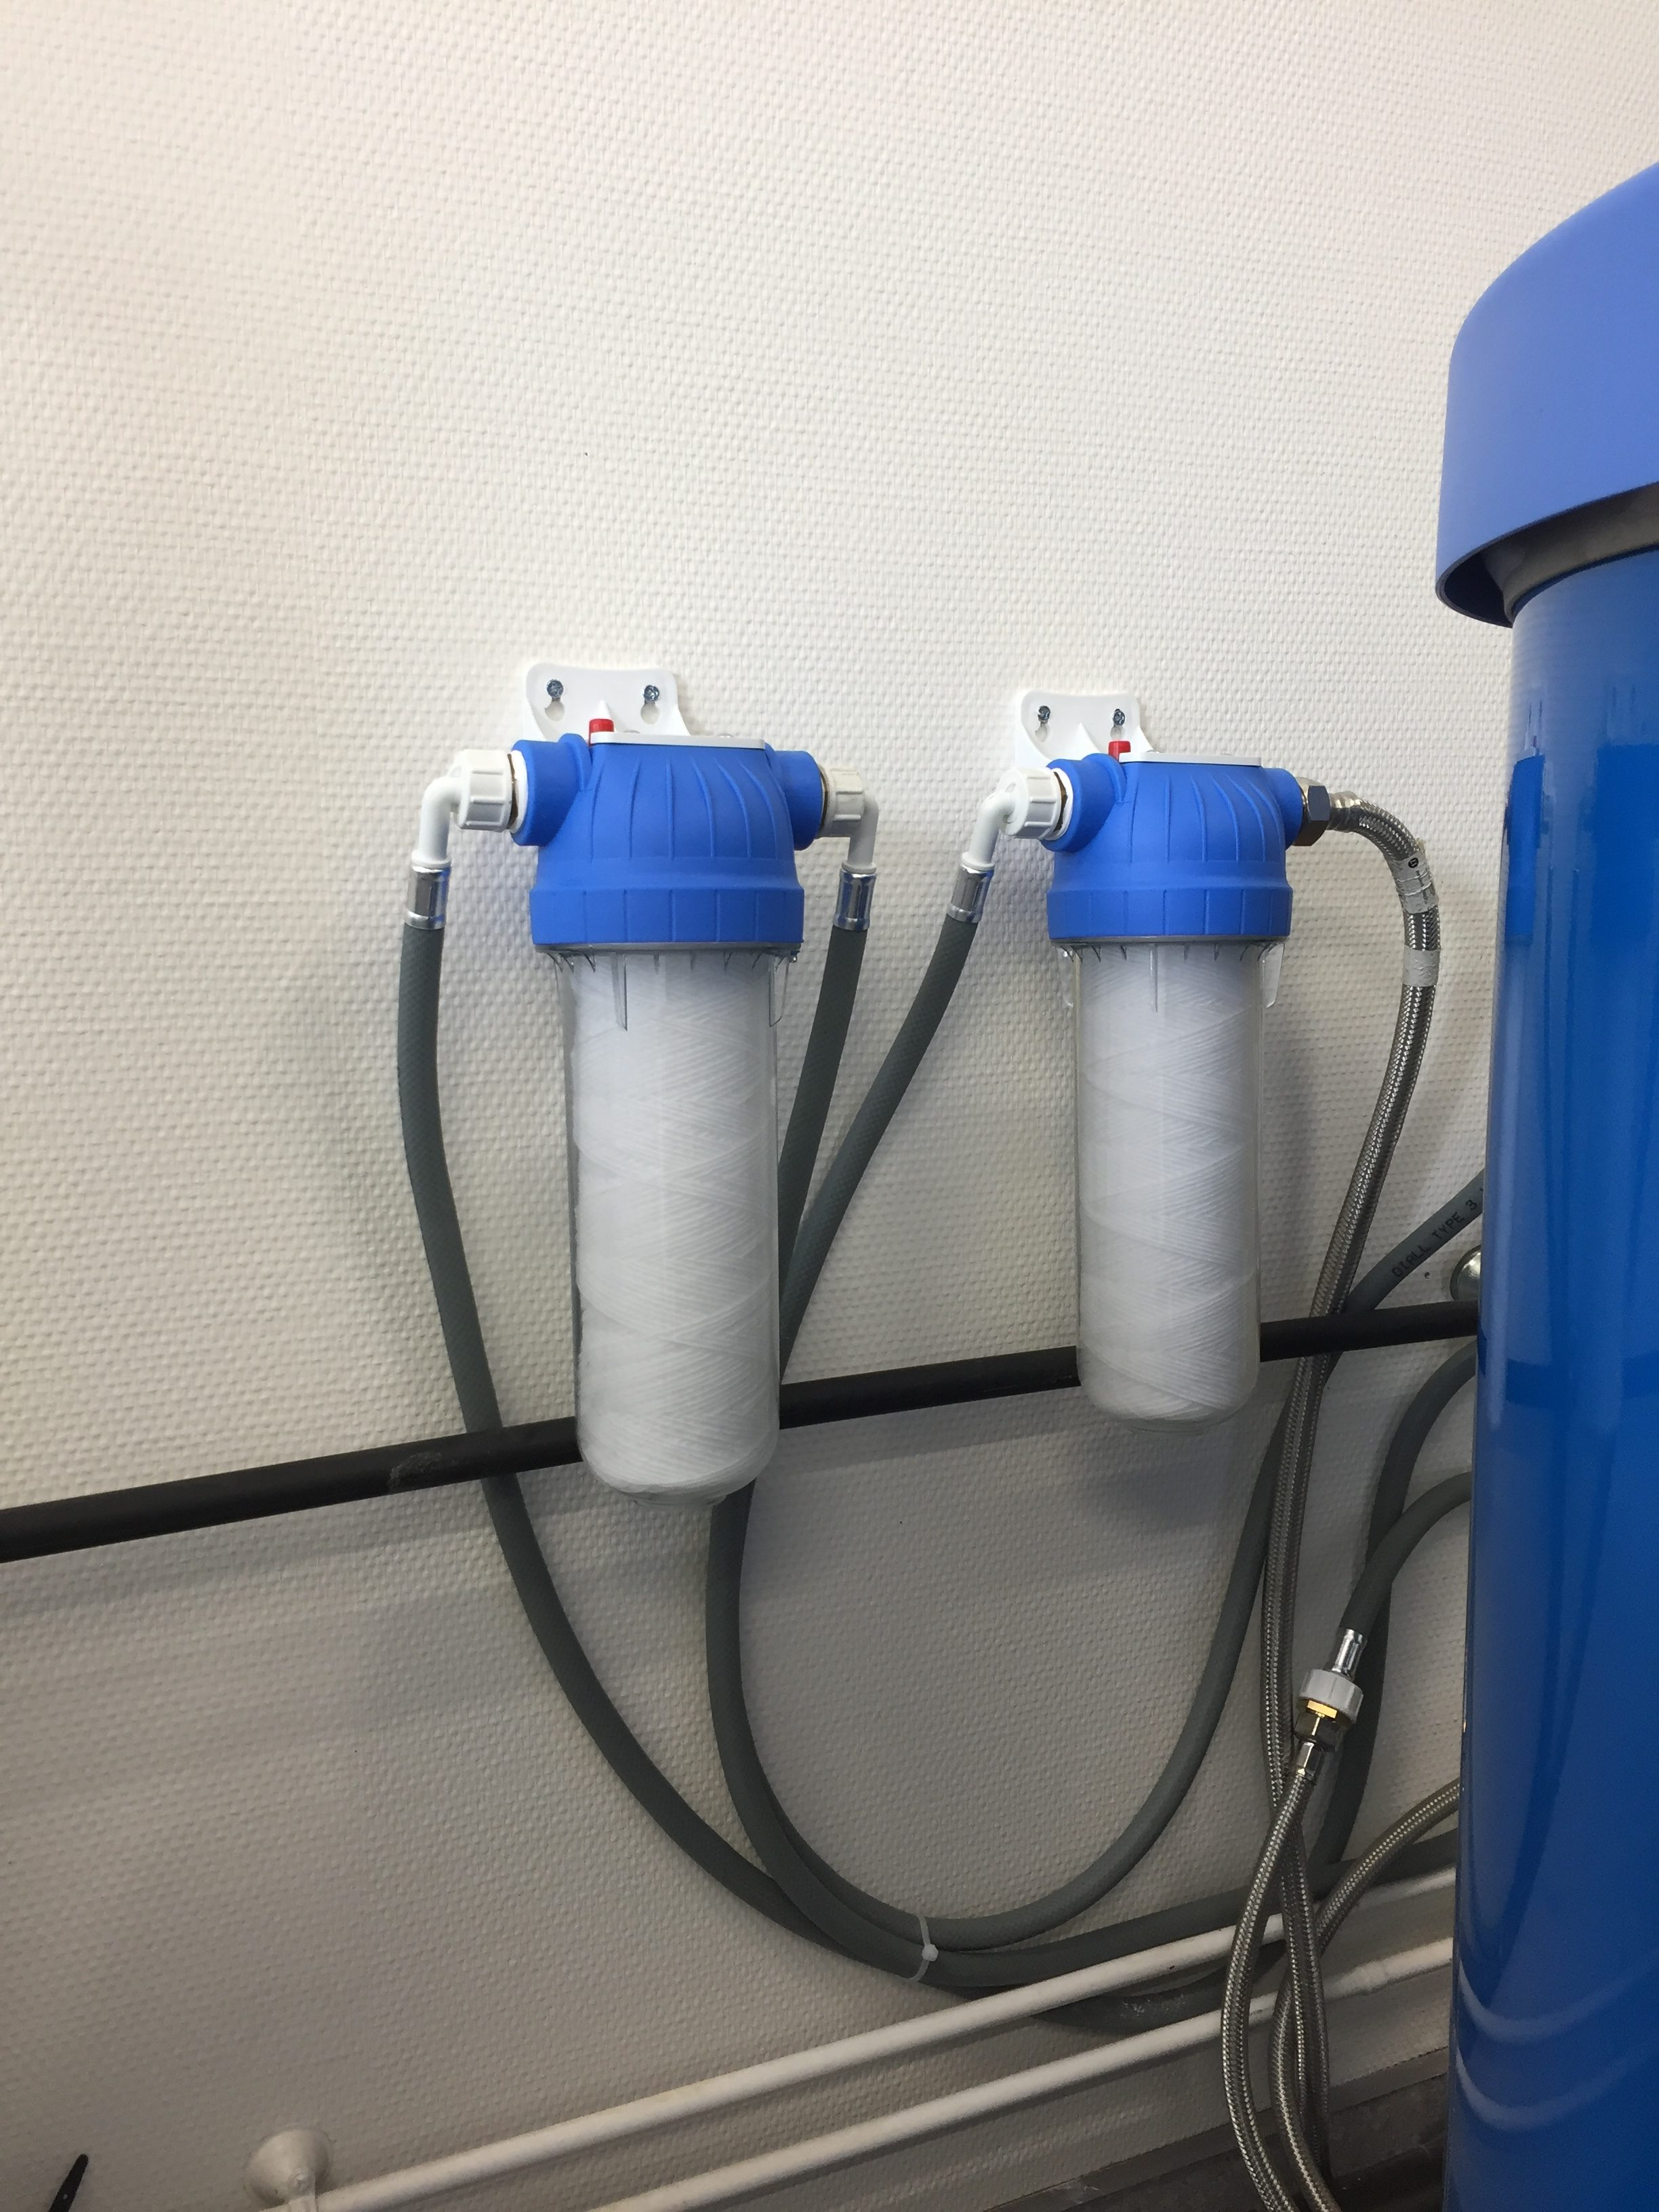 Carters filtration